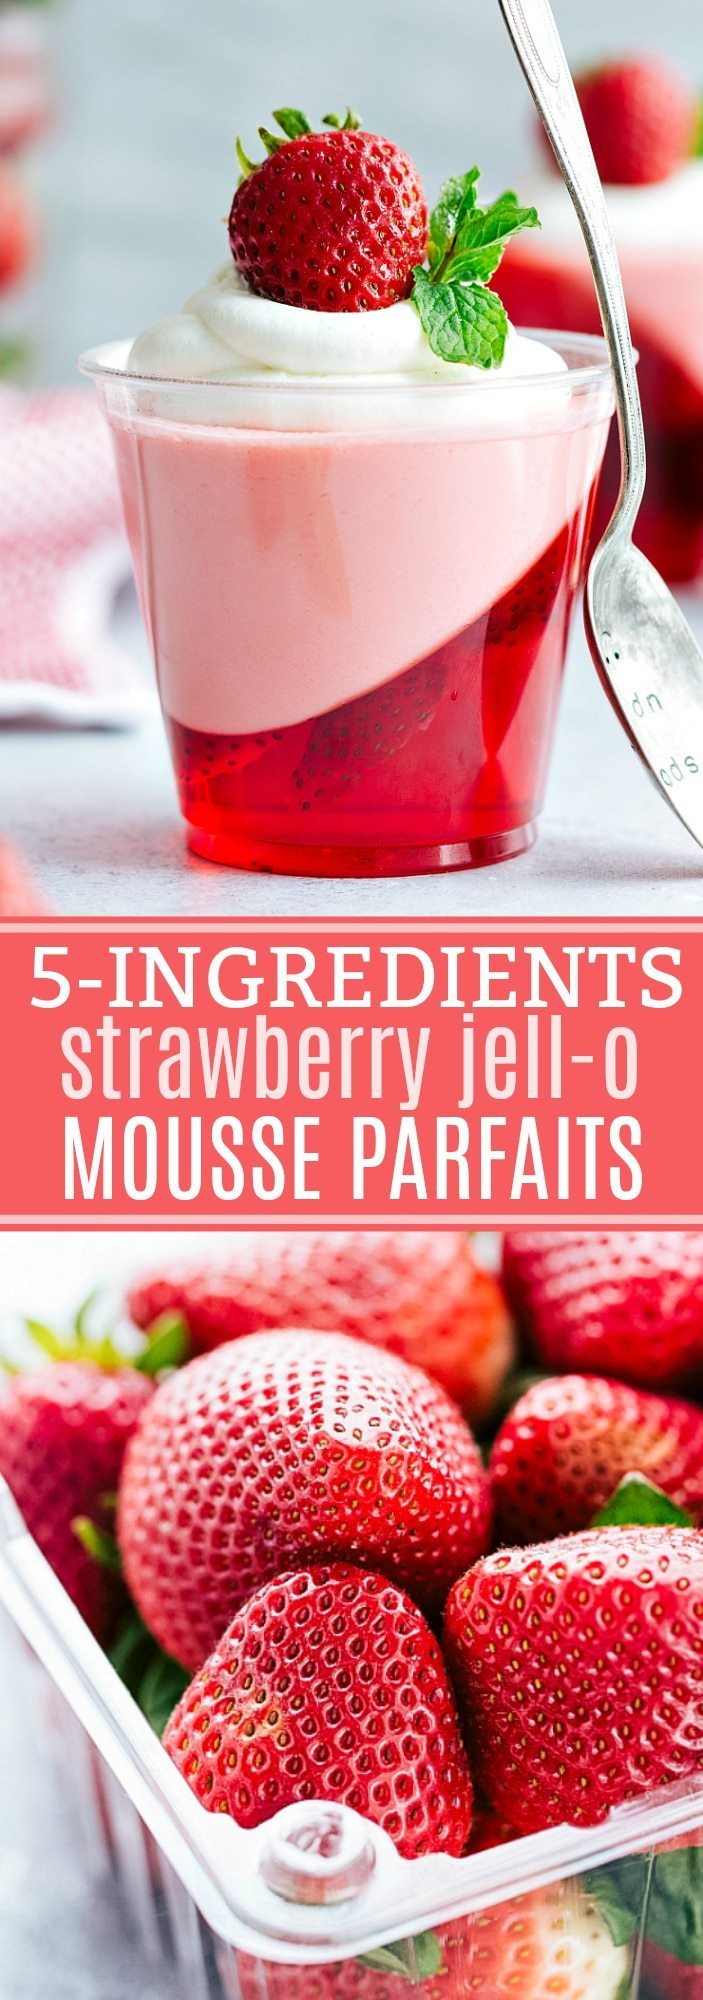 The coolest and EASIEST hack to make these slanted jell-o parfait cups with a strawberry mousse on top. Delicious and so easy -- only FIVE ingredients!!! Via chelseasmessyapron.com